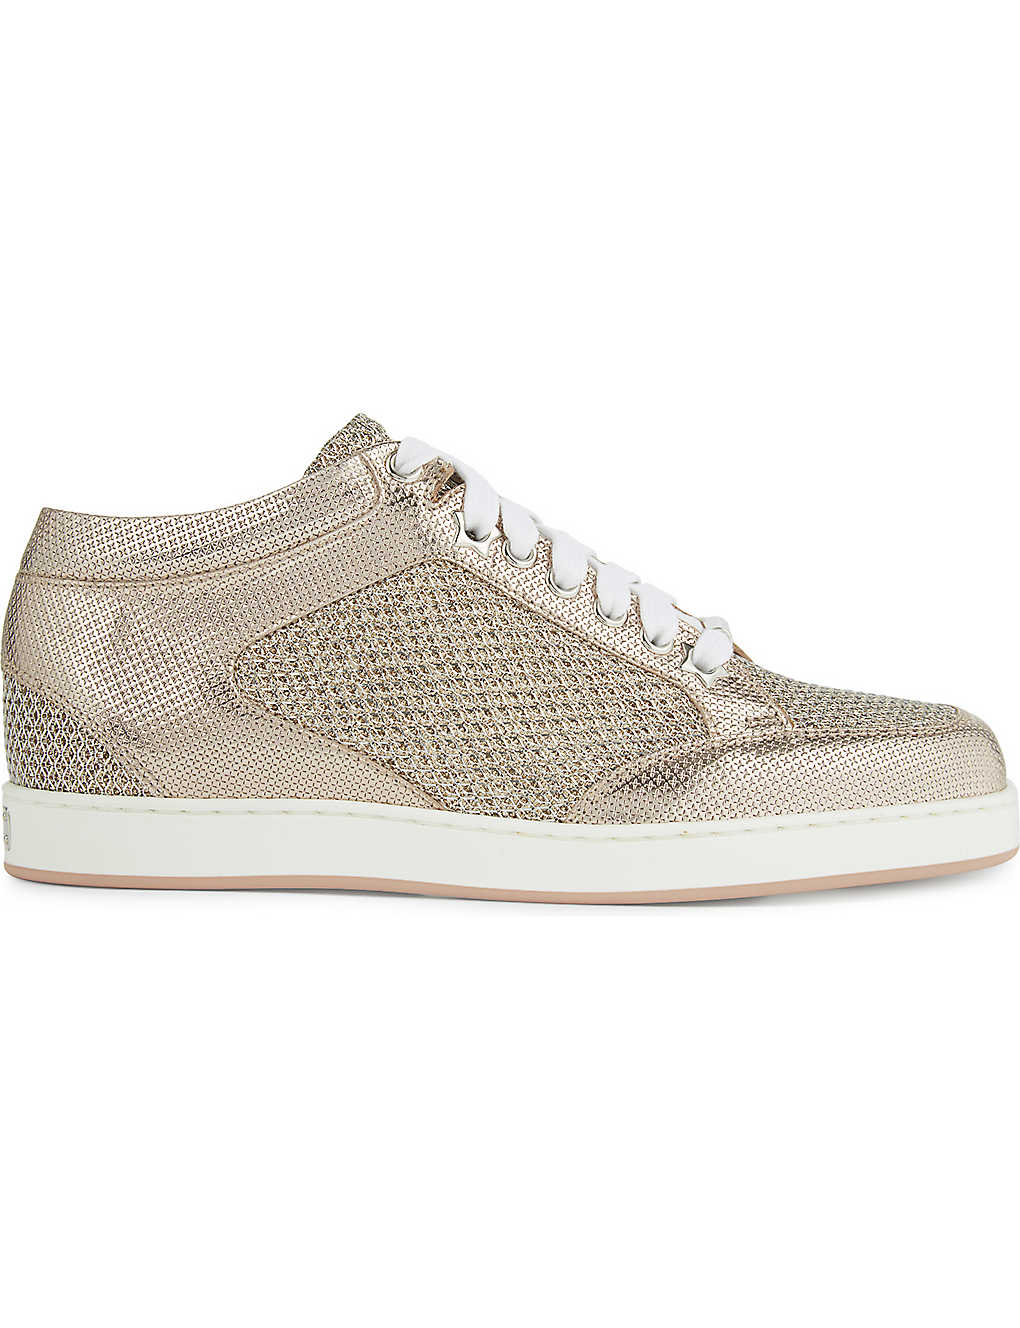 Sneakers for Women, Silver, Leather, 2017, 3.5 4 4.5 5.5 6 7 7.5 Jimmy Choo London